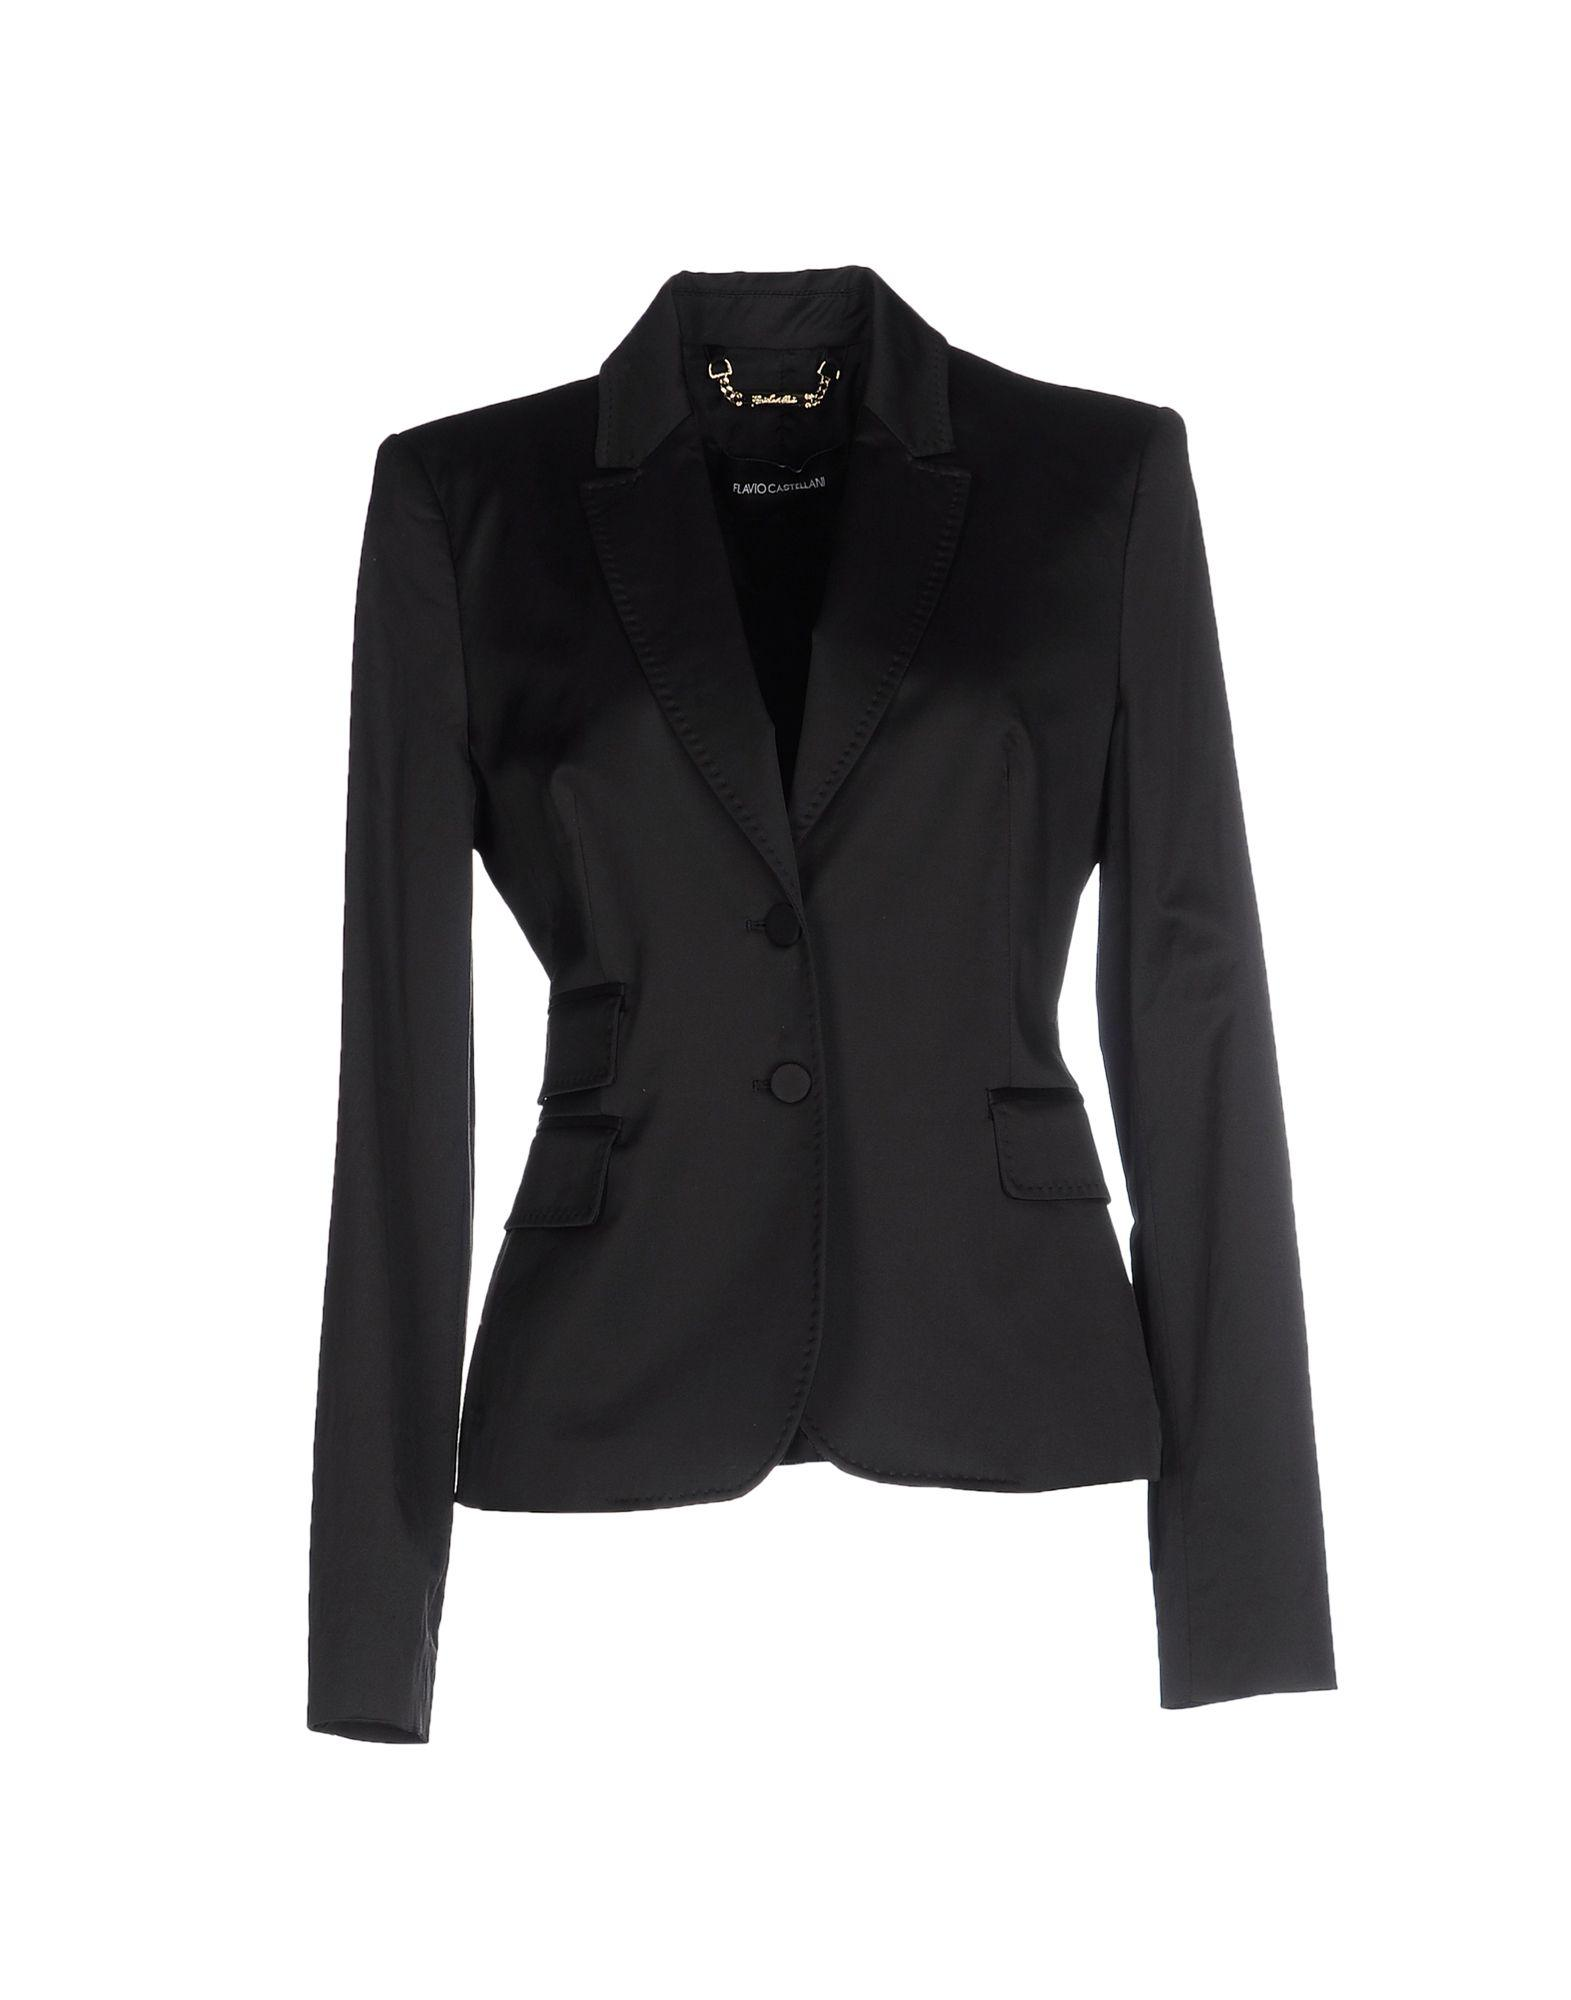 Outlet Free Shipping Amazon Cheap Online SUITS AND JACKETS - Blazers Flavio Castellani Quality Outlet Store lGzBQZY